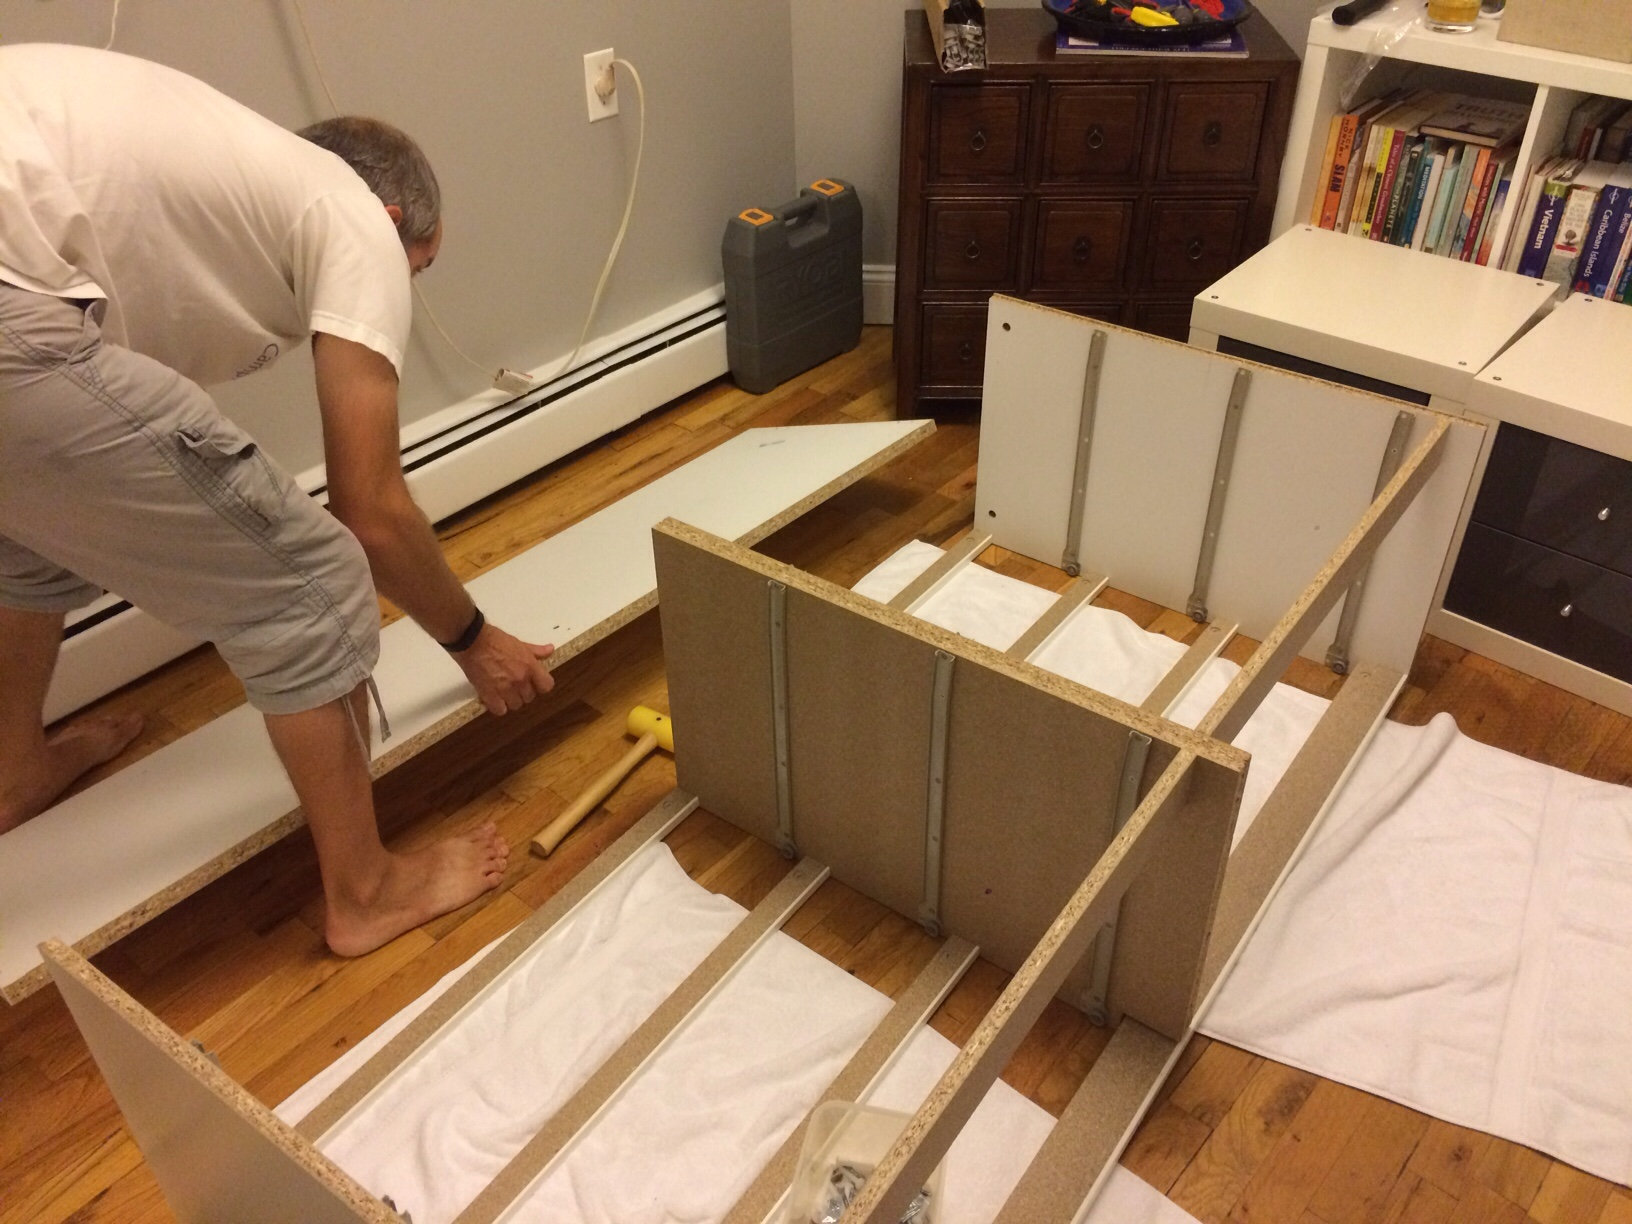 English hubby with IKEA furniture